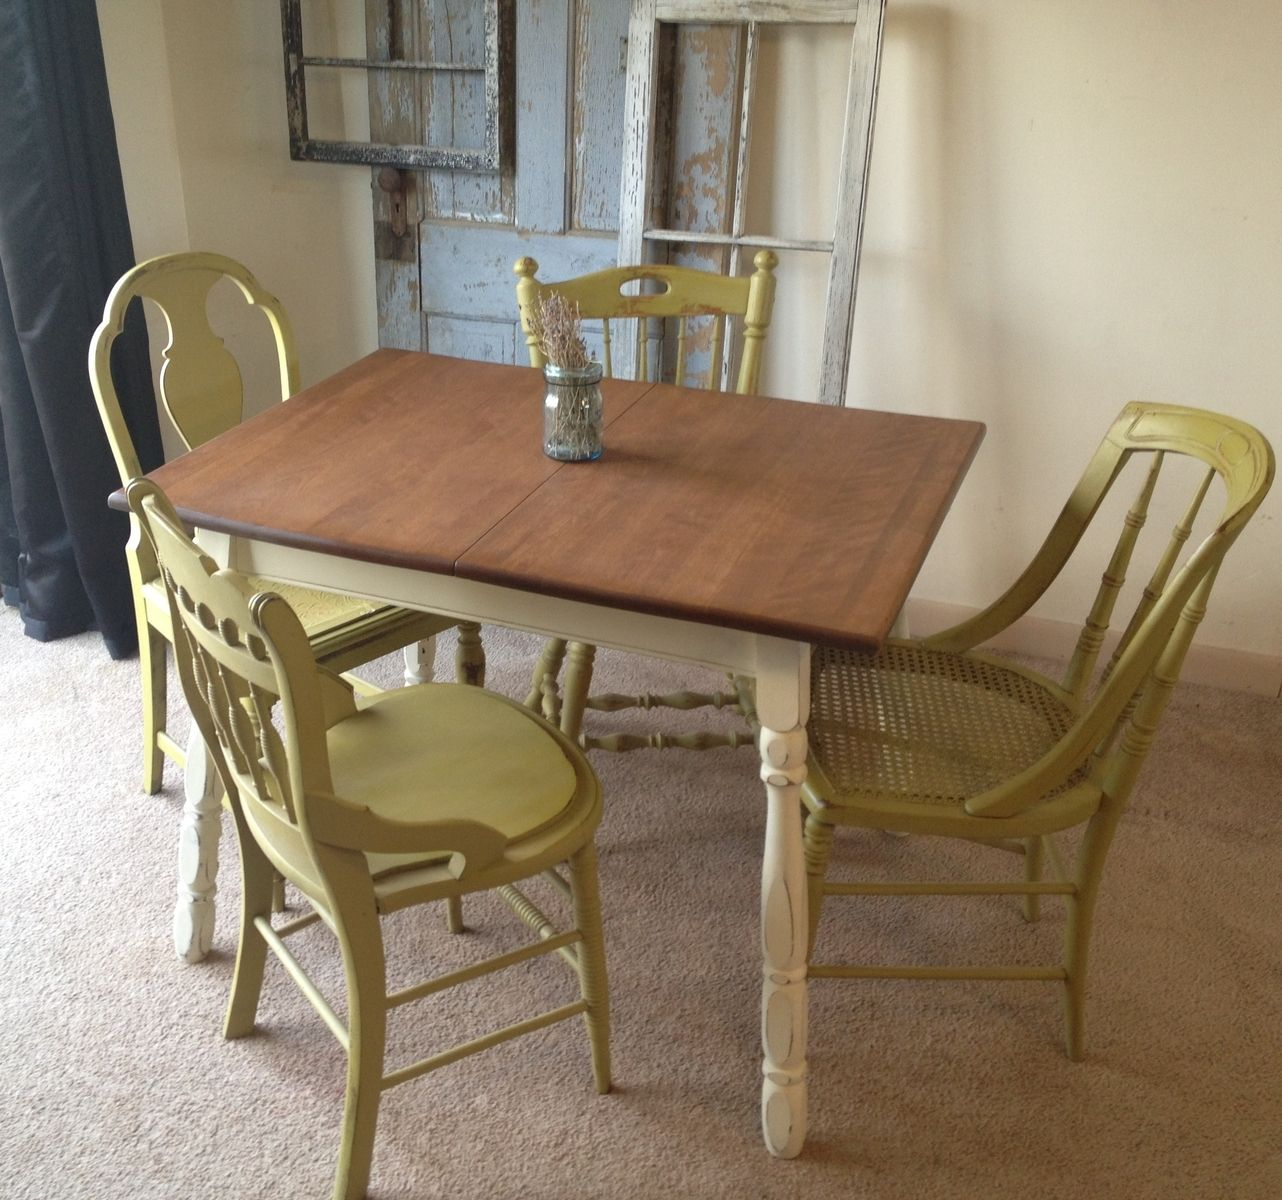 Custom Made Vintage Small Kitchen Table With Four Miss Matched Chairs - Hand Crafted Vintage Small Kitchen Table With Four Miss Matched